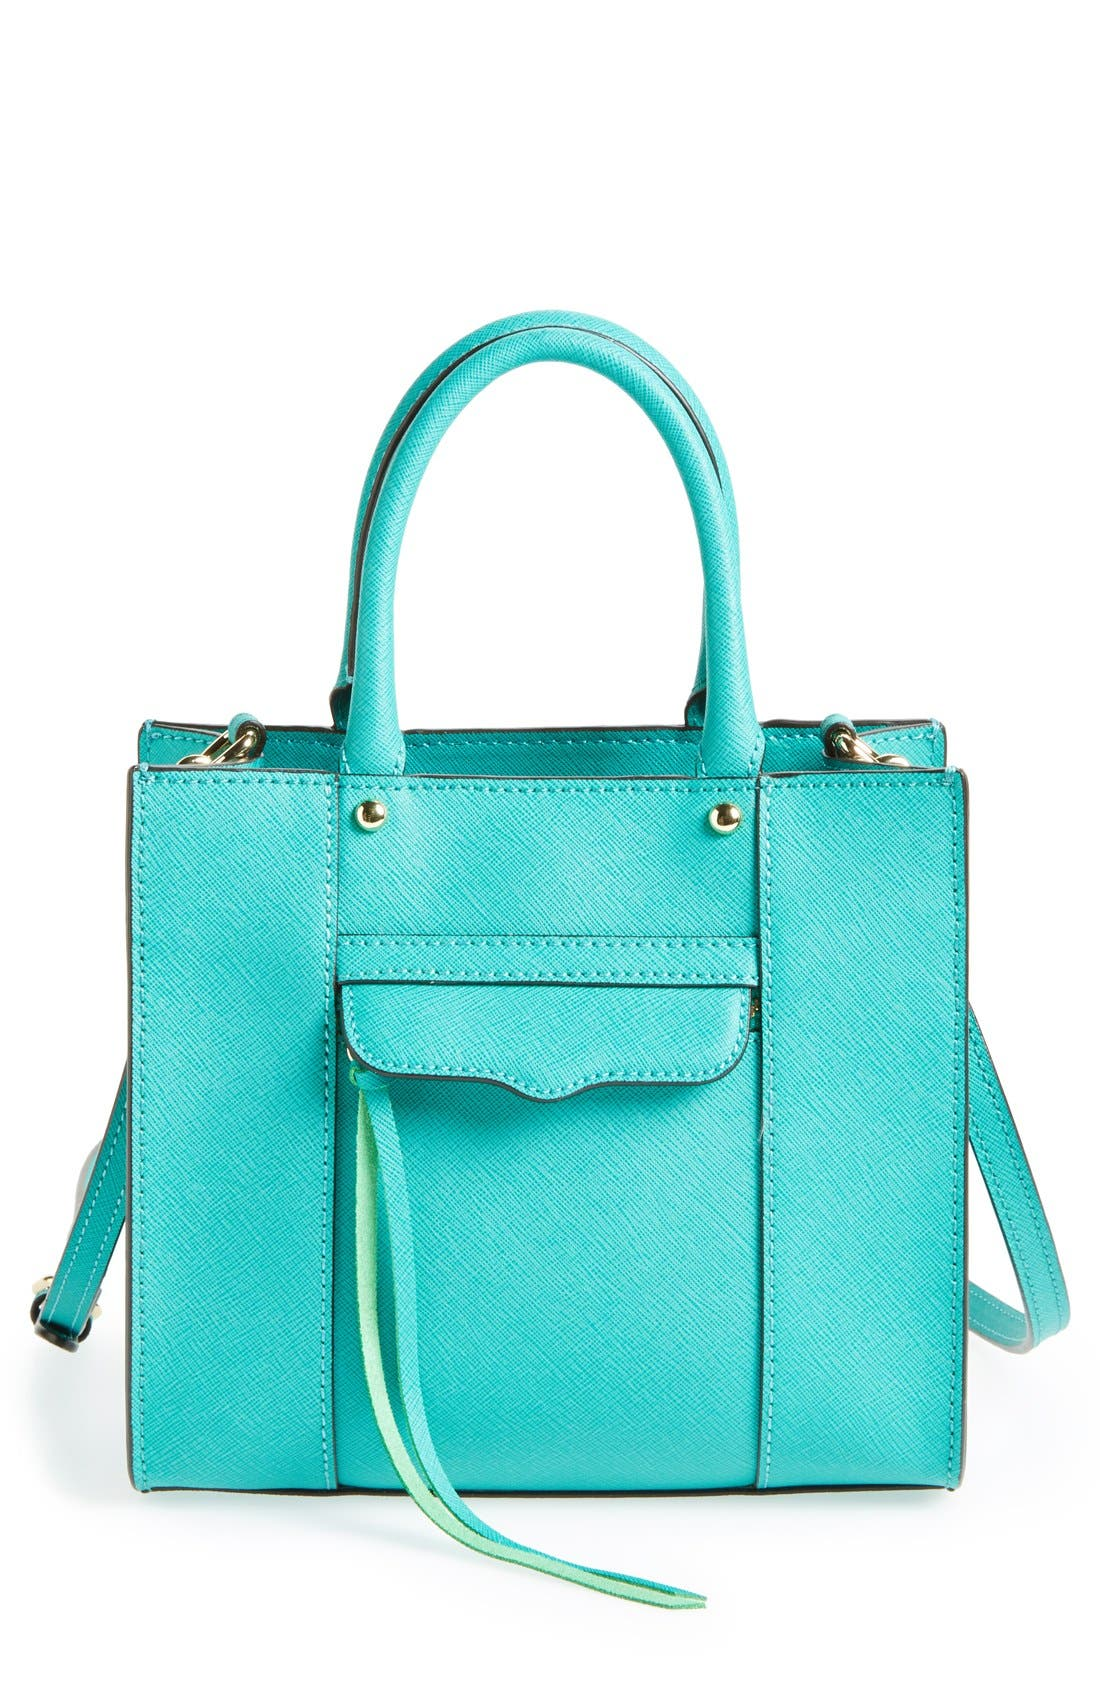 'Mini MAB Tote' Crossbody Bag,                             Main thumbnail 25, color,